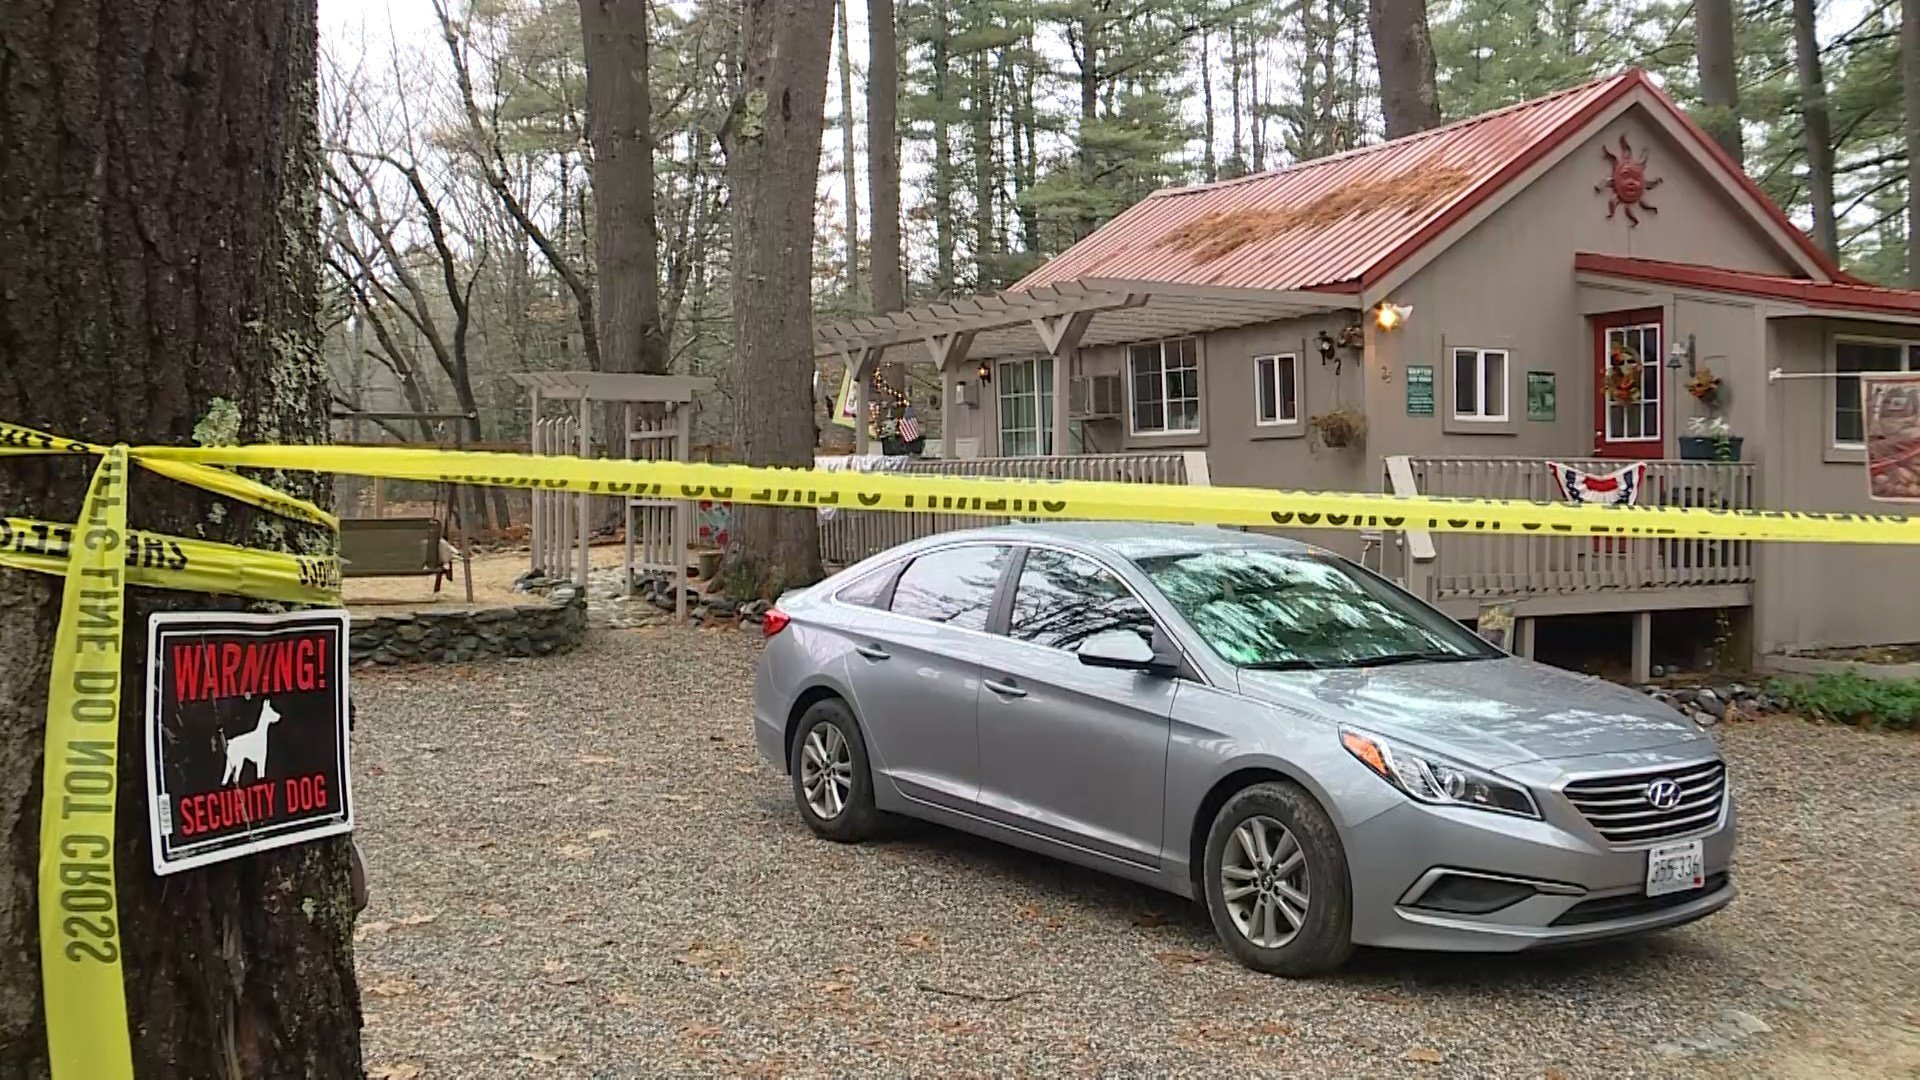 Dead, 1 Badly Injured After Shootings in Maine